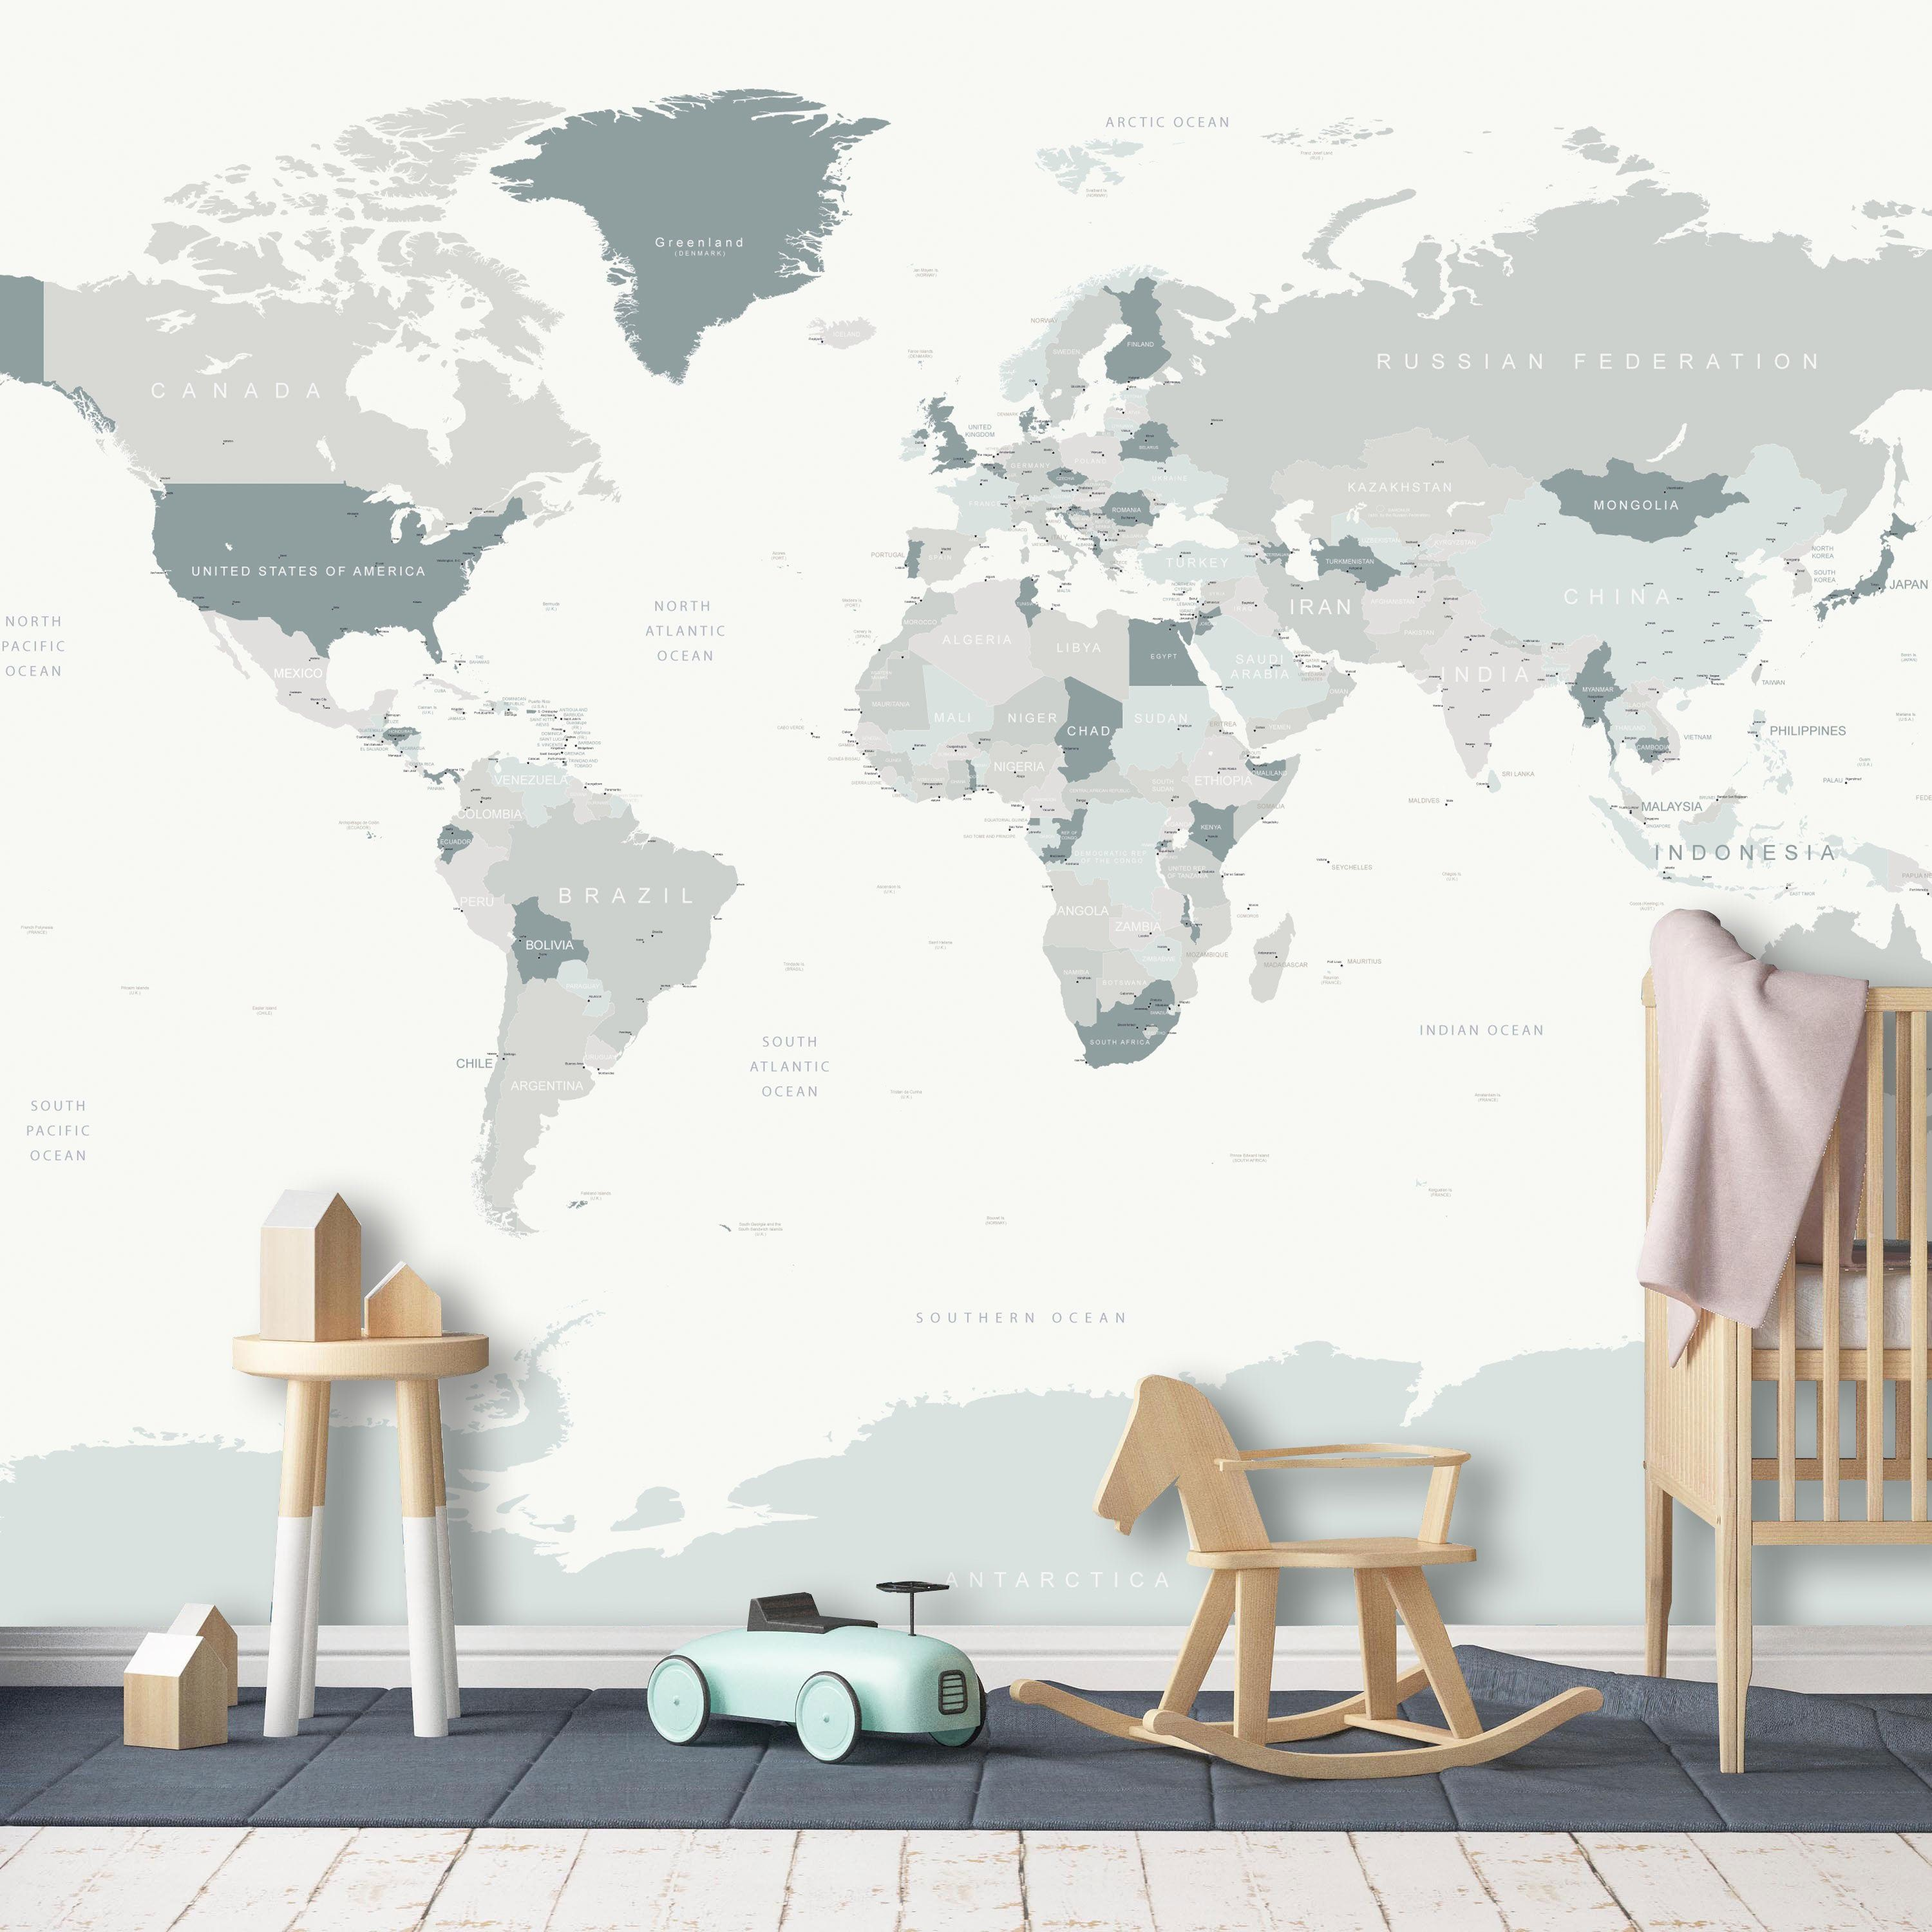 World Map Wall Mural in Neutral Colors, Detailed World Map